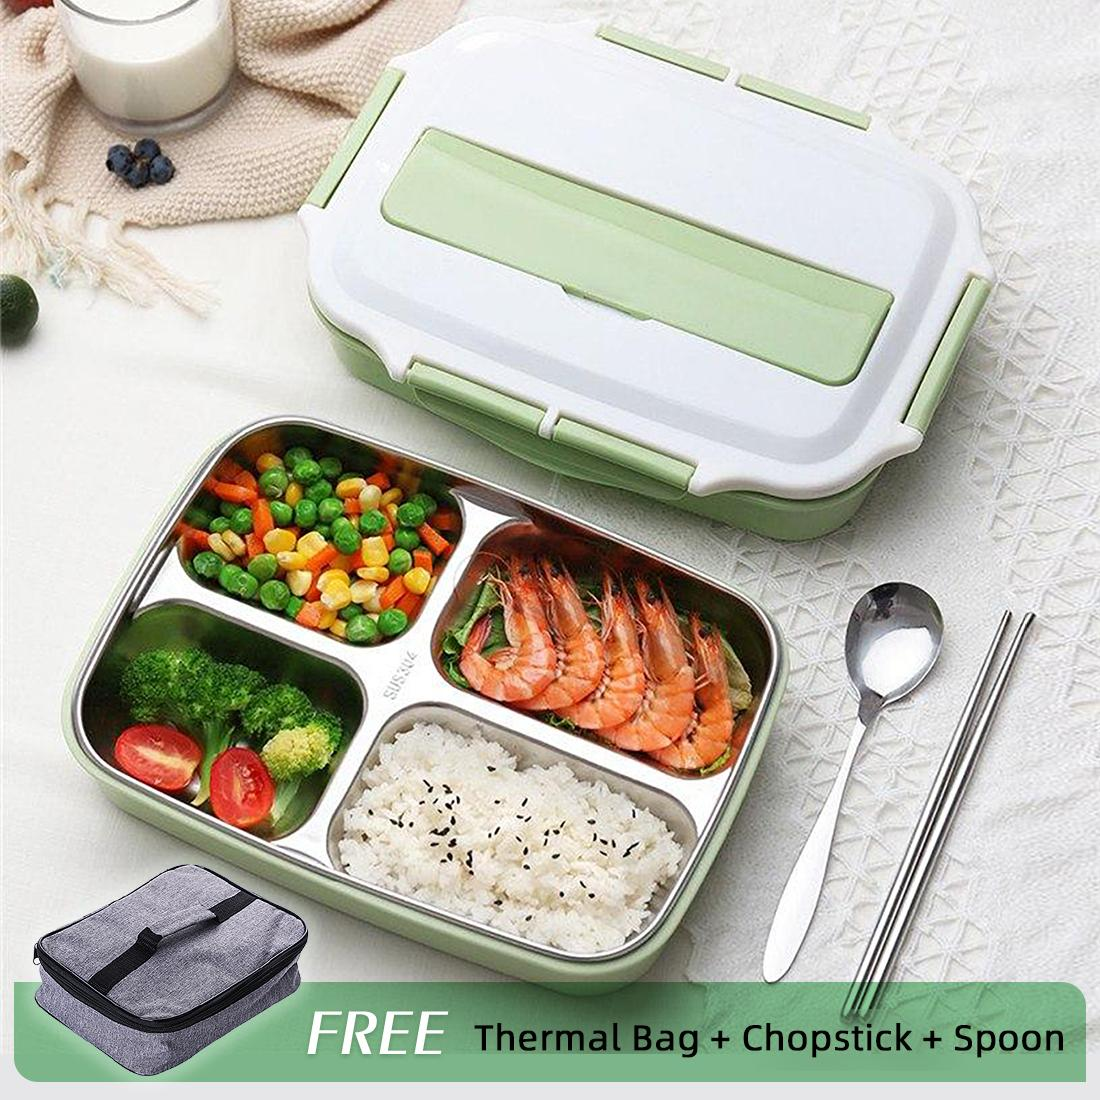 a6dbb55f36d6 Thermal Lunch Box With Bag Set Stainless Steel Kid Adult Bento Boxs  Leakproof Japanese Food Container Portable Picnic Storage